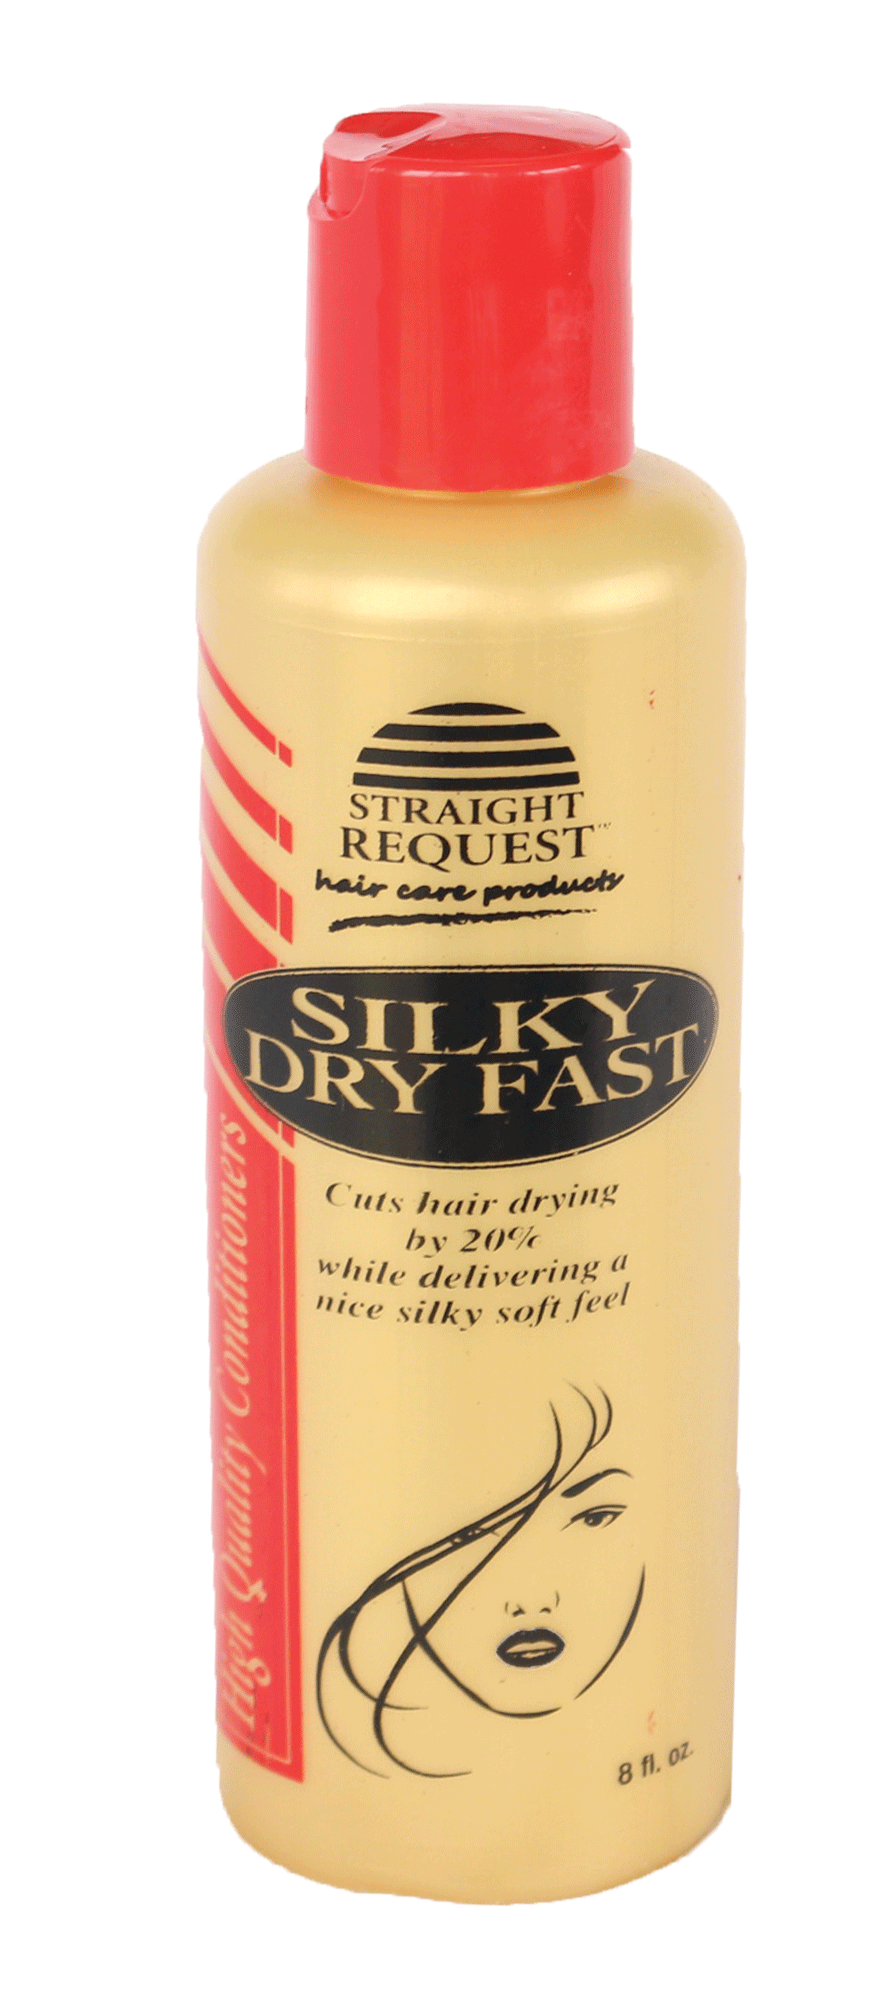 Silky Dry Fast Leave-In Conditioner - 8oz